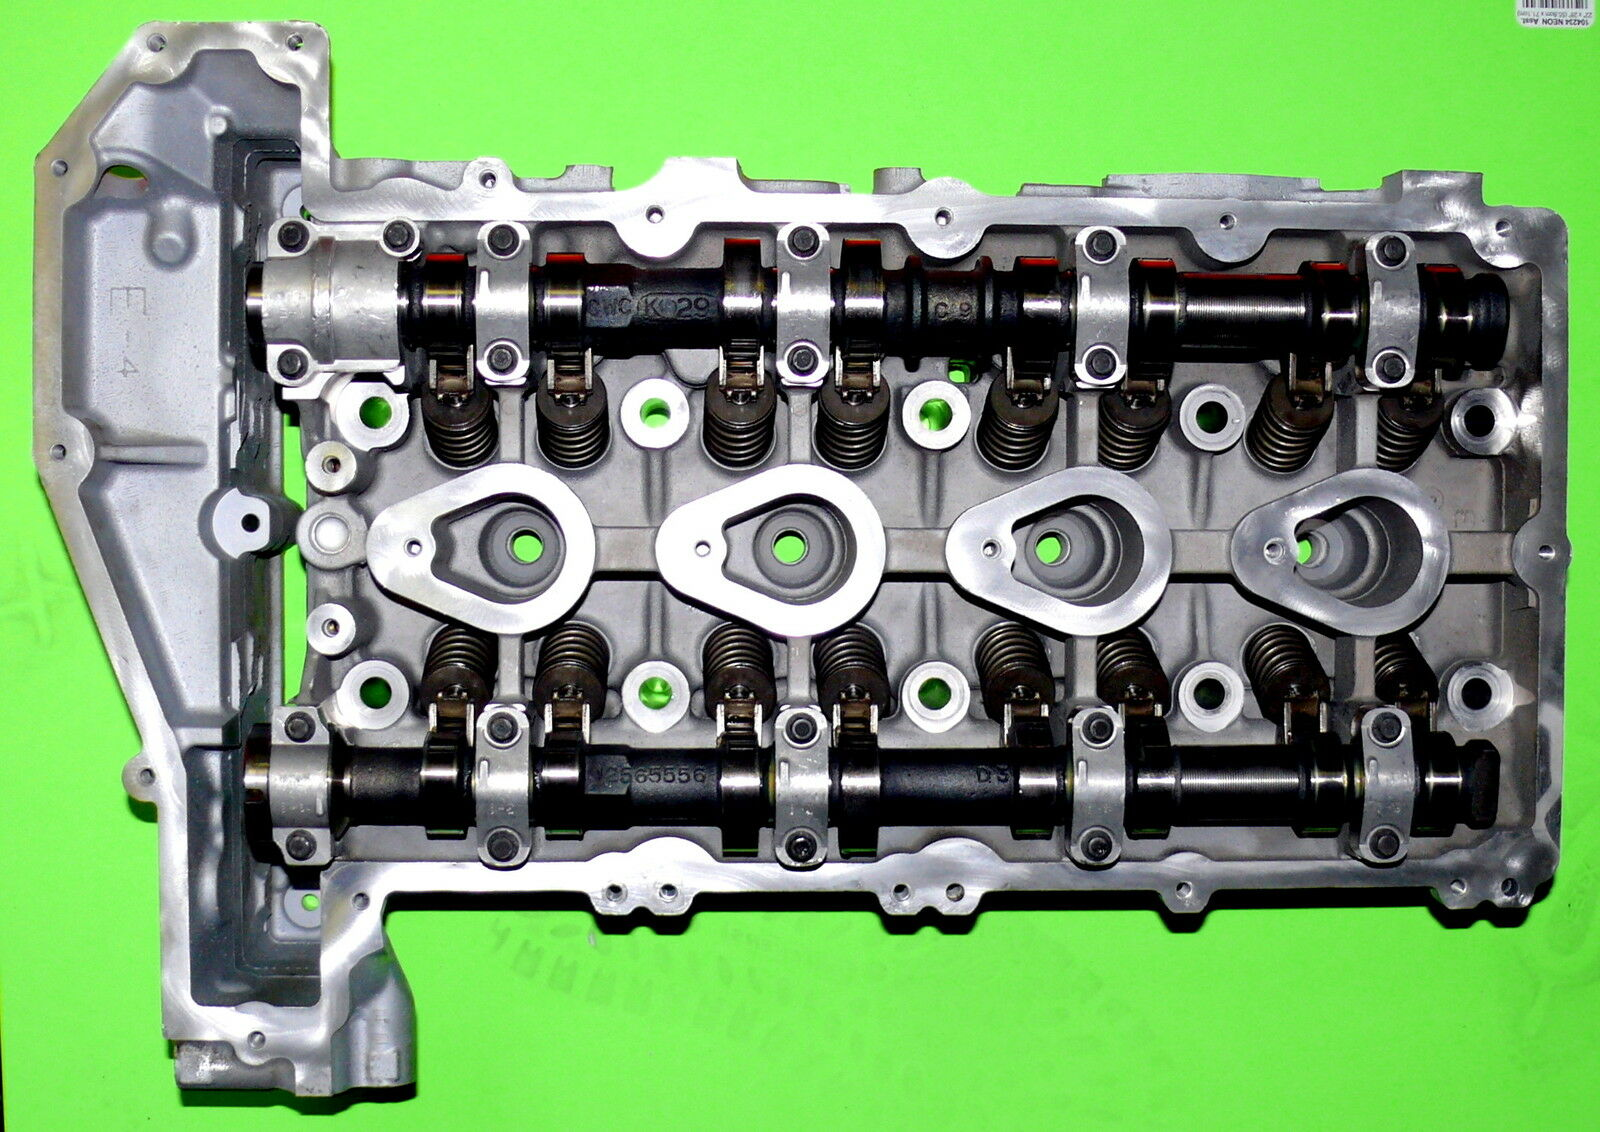 gmc canyon gm chevy colorado isuzu i series 2 8 4 cyl dohc cylinder head 04 06 ebay. Black Bedroom Furniture Sets. Home Design Ideas